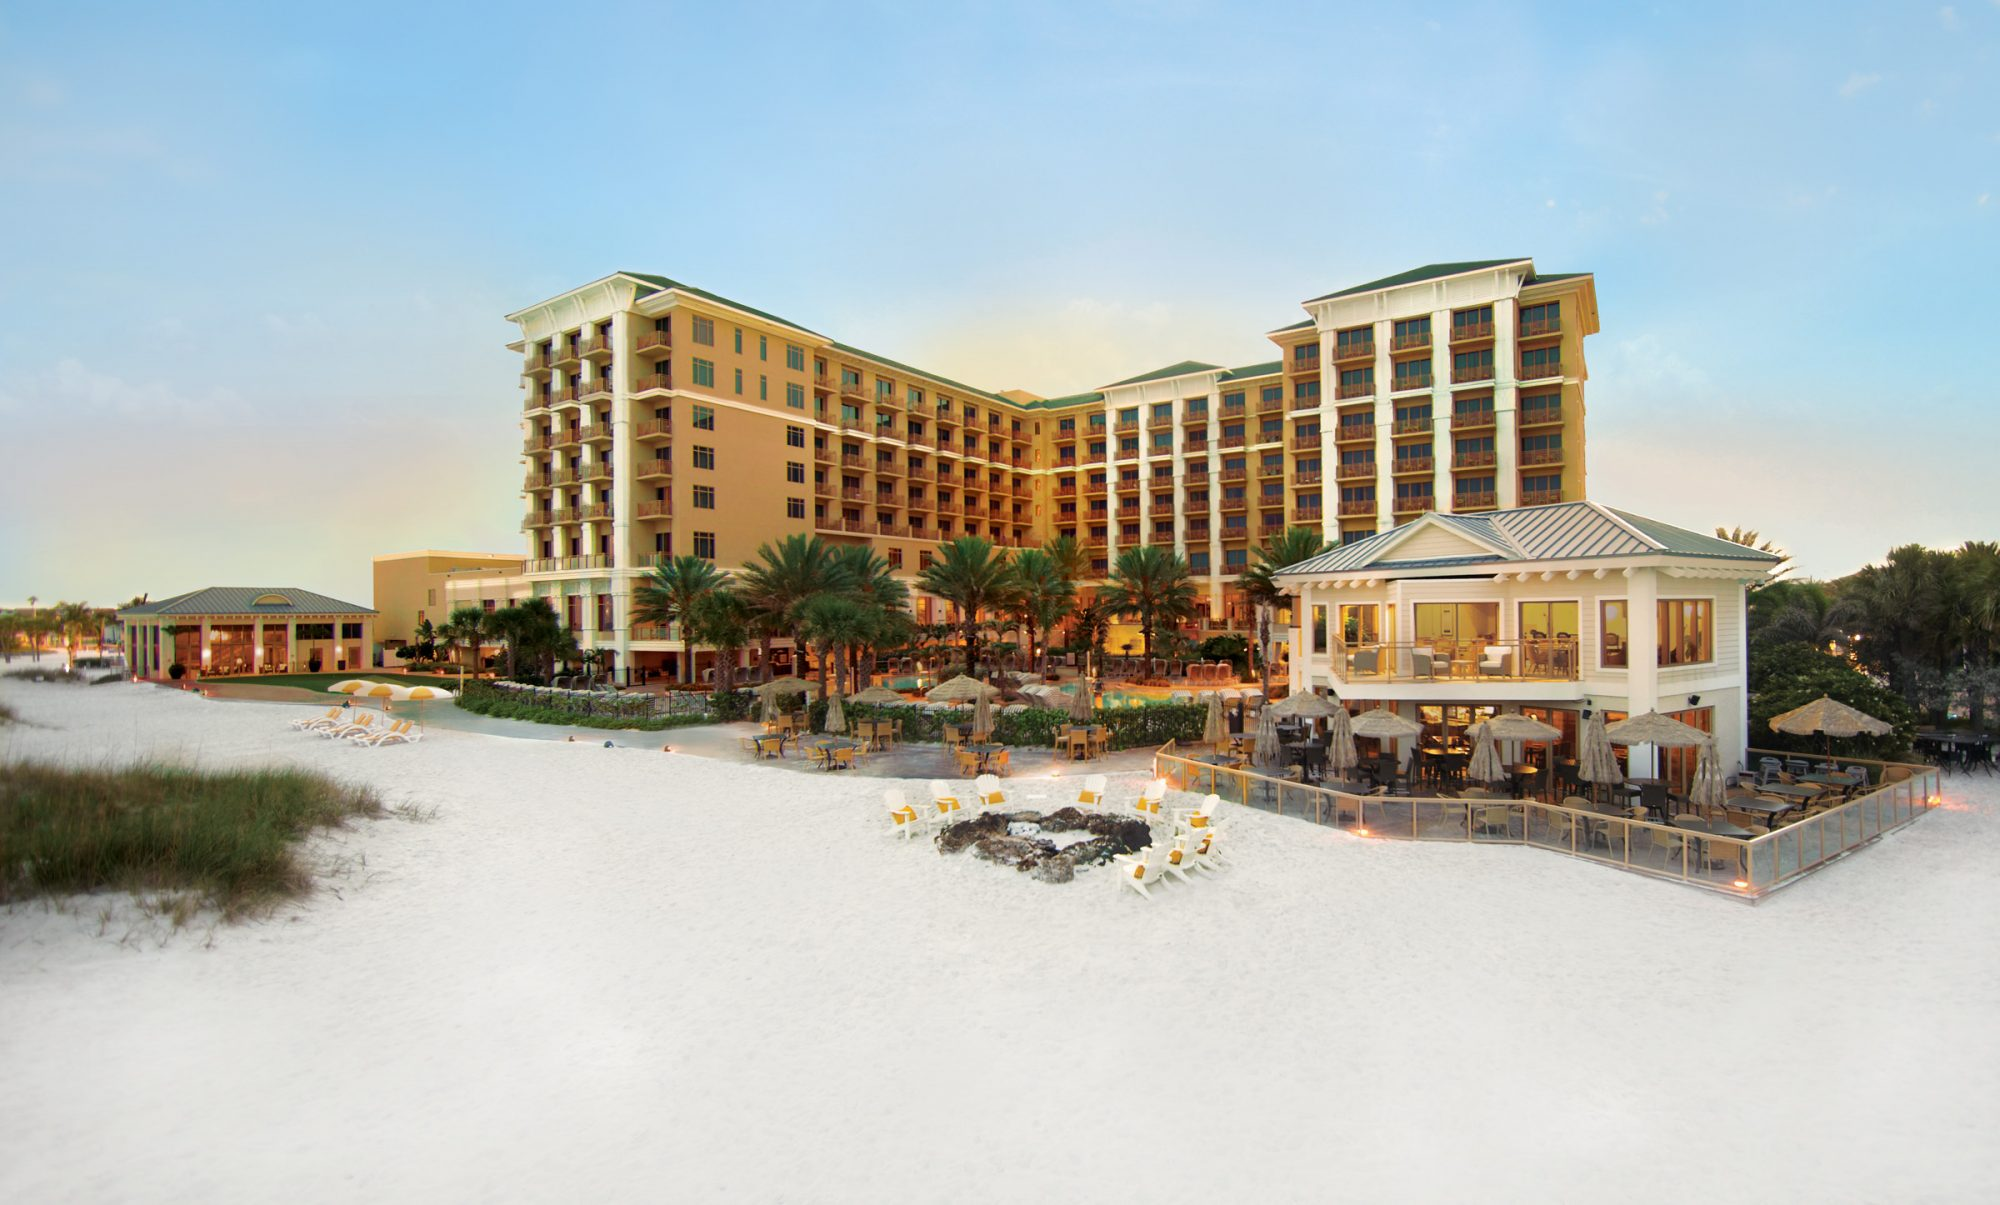 No. 20 Sandpearl Resort in Clearwater Beach, Florida